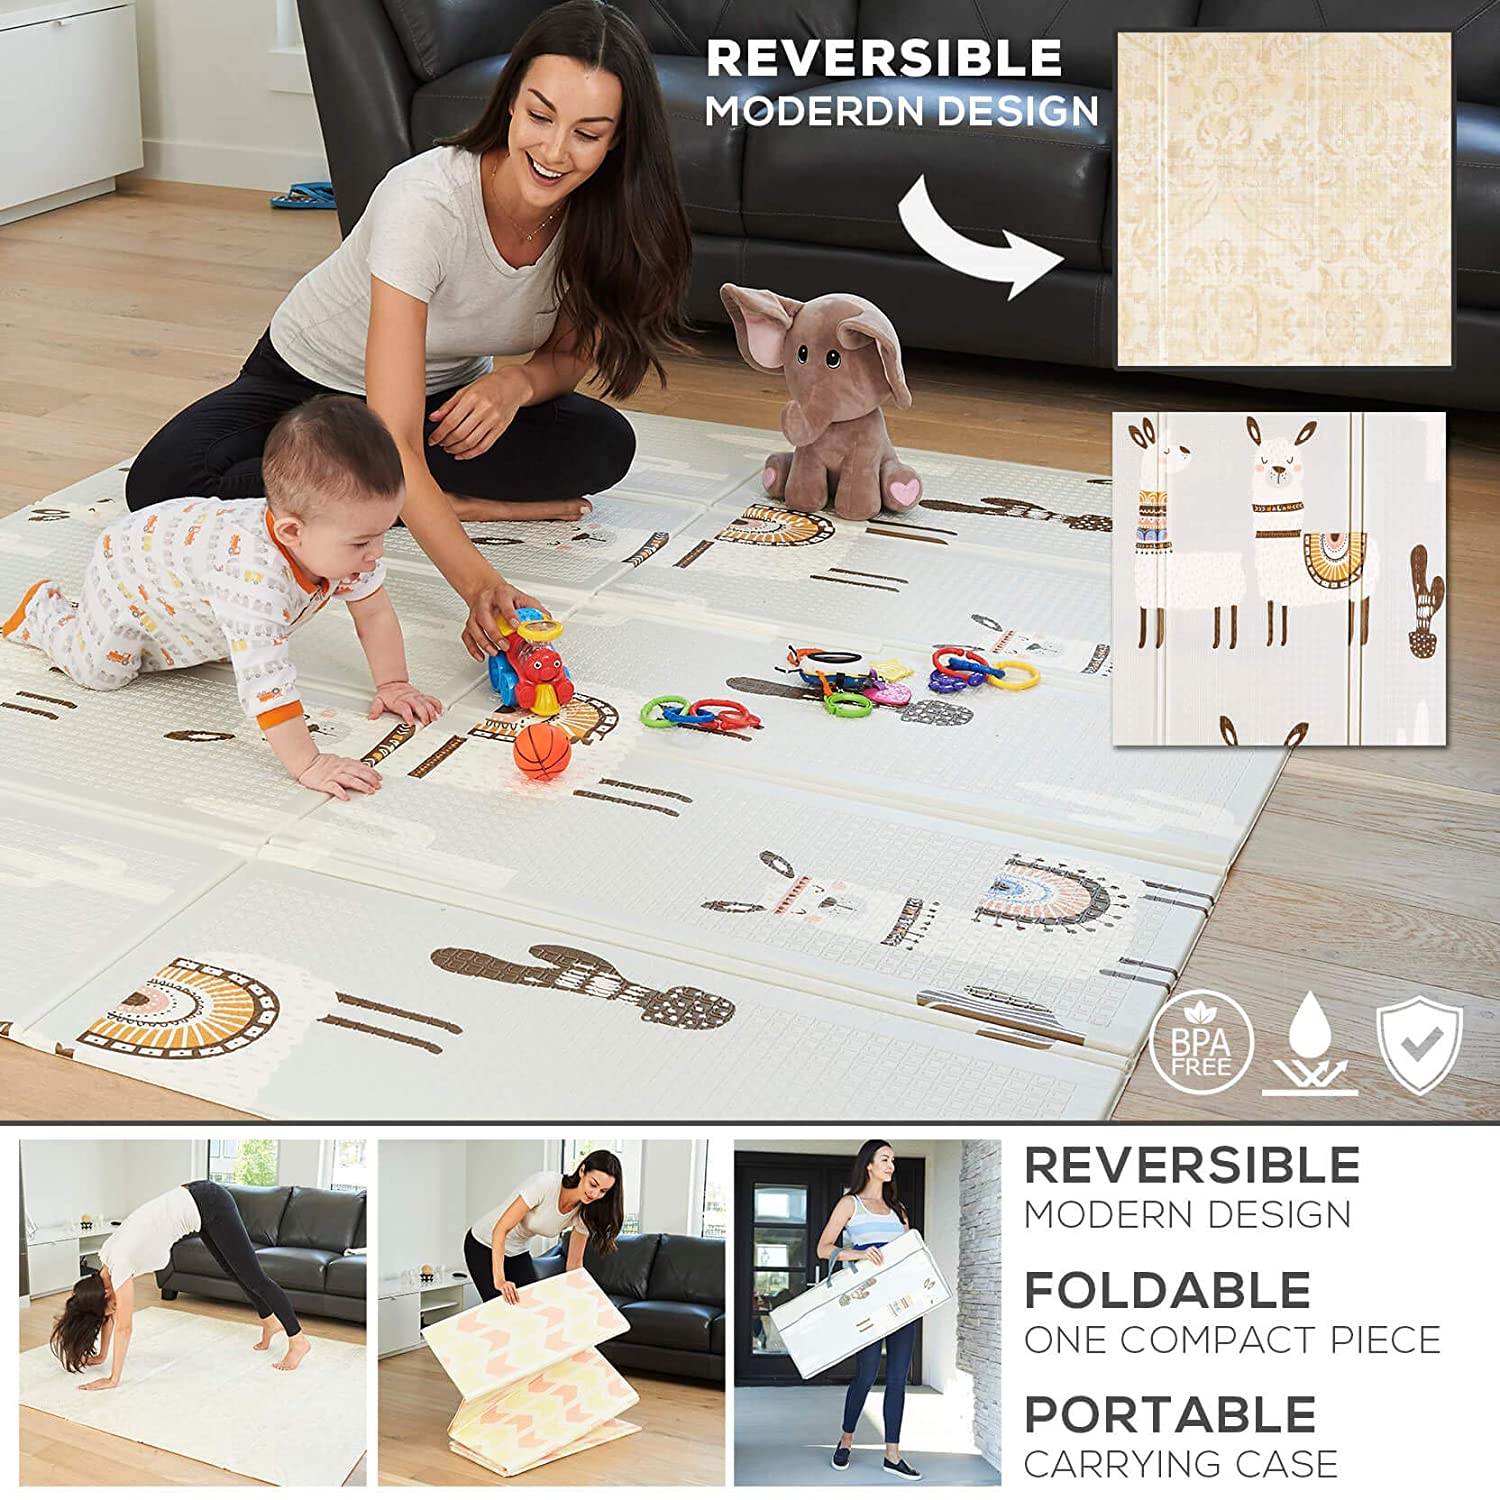 Foldable Play Mat – A Modern Design on One Side Reversible into Cute Llama Design on The Other. Our Soft Foam Kids Playmat is Great on The Floor for Baby and Toddlers, Crawling, Gym or Tummy Time